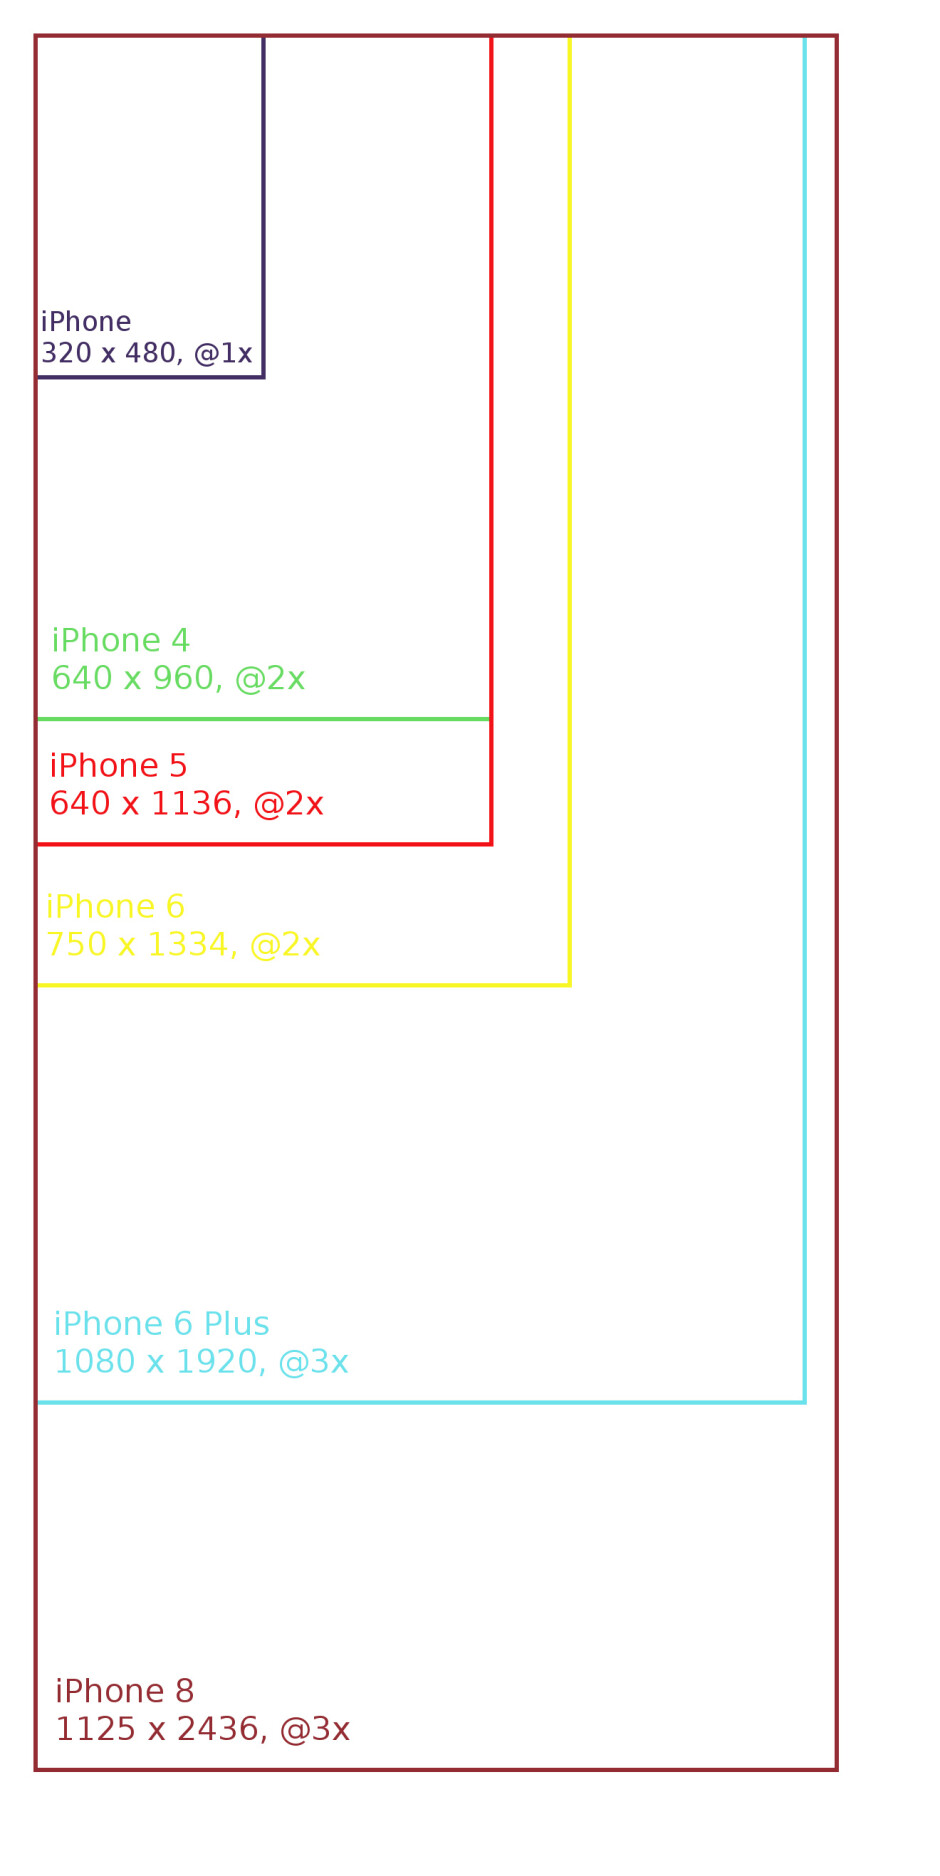 iPhone resolutions - The iPhone 8 will have a sharper screen: here is the most likely resolution